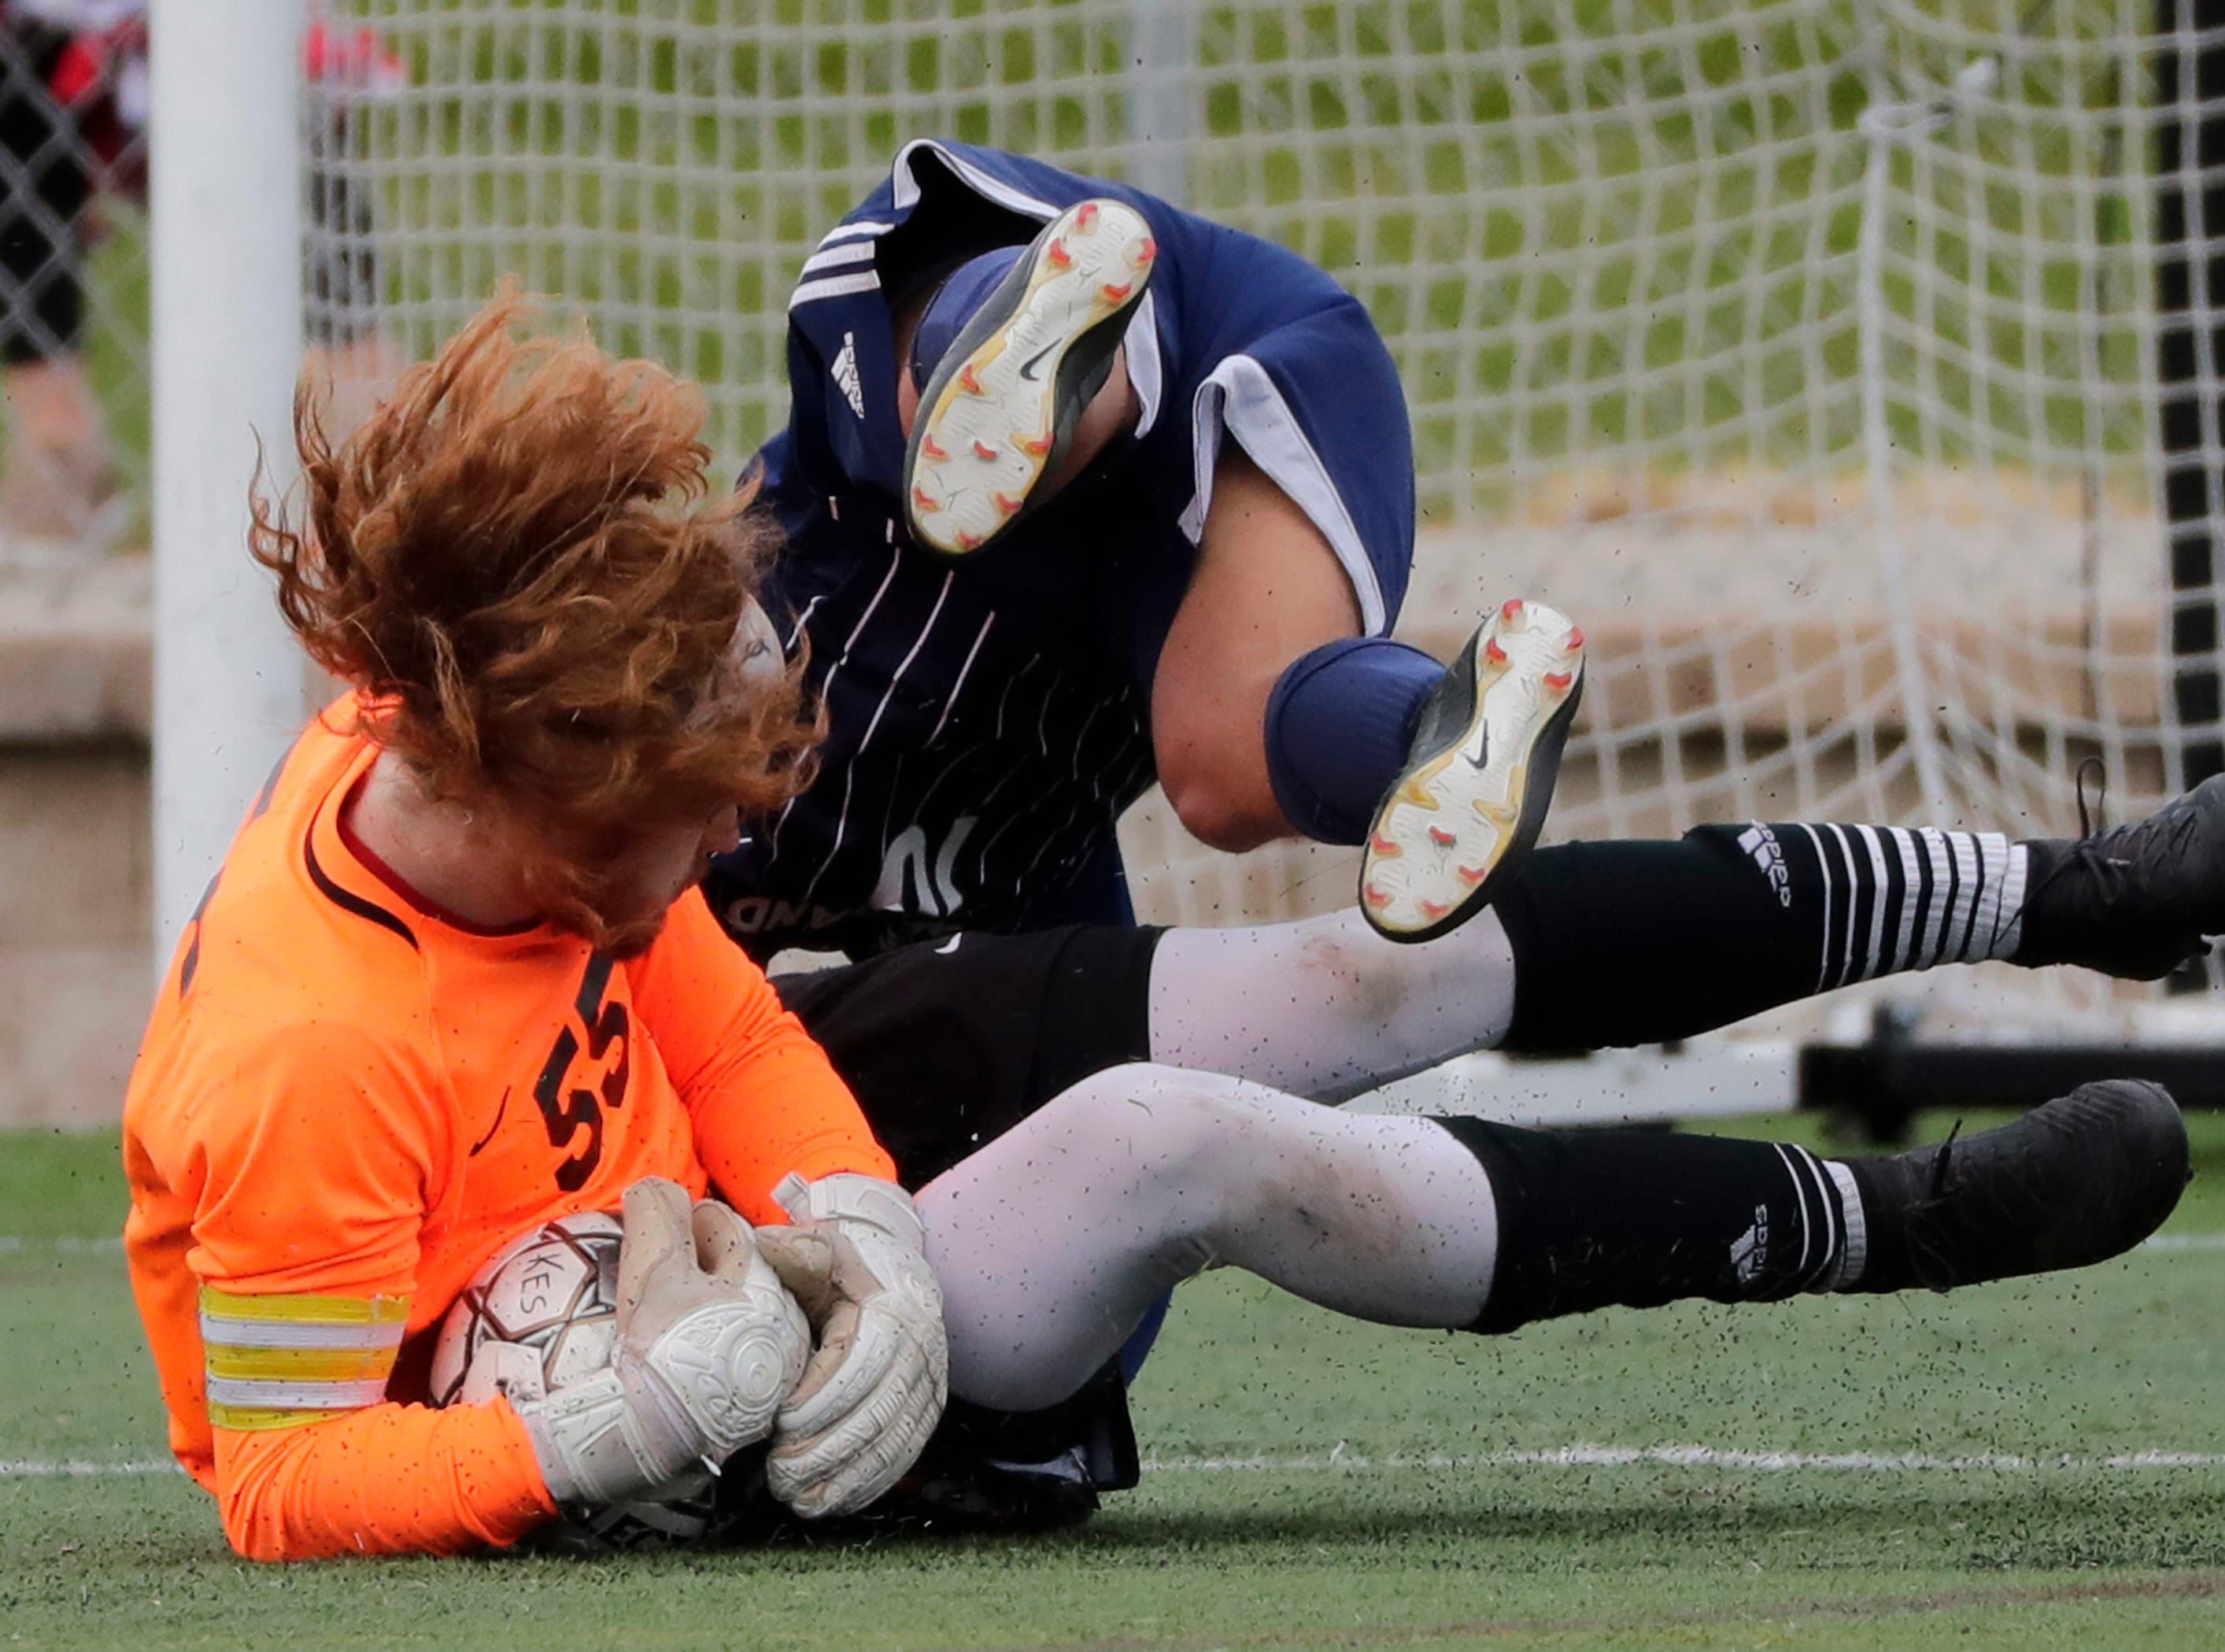 Plymouth High School's Gabe Thull (55) makes a save as he collides with McFarland High School's Juan Torres (16) during their WIAA Division 3 state semifinal boys soccer game Thursday, November 1, 2018, at Uihlein Soccer Park in Milwaukee, Wis. 